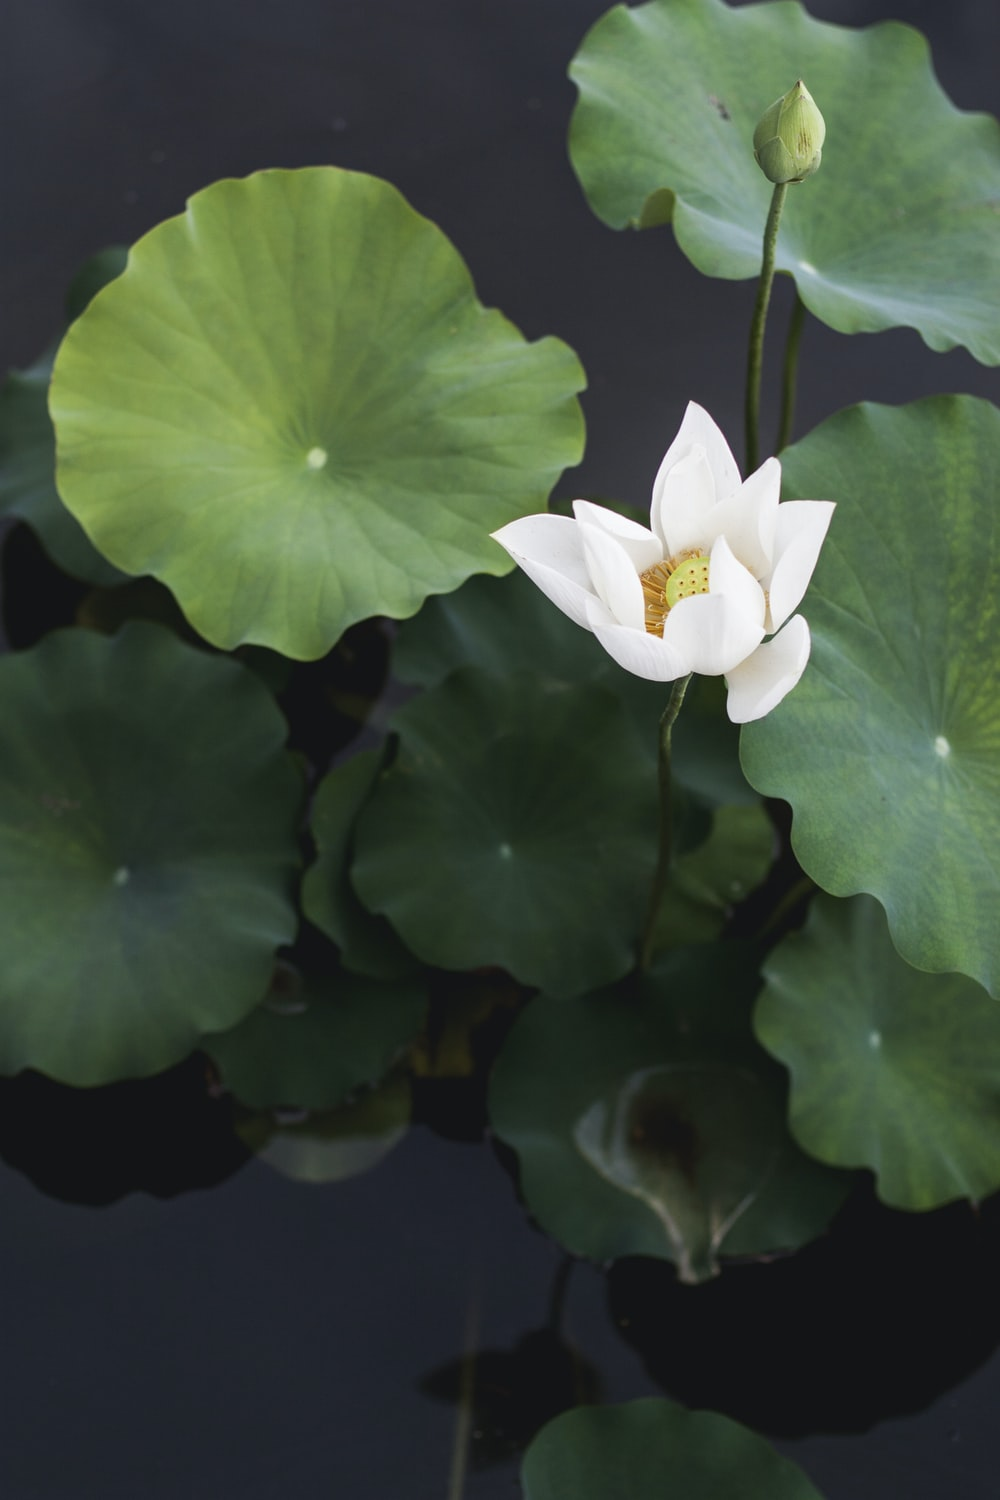 Lily Pad Pictures Hq Download Free Images On Unsplash